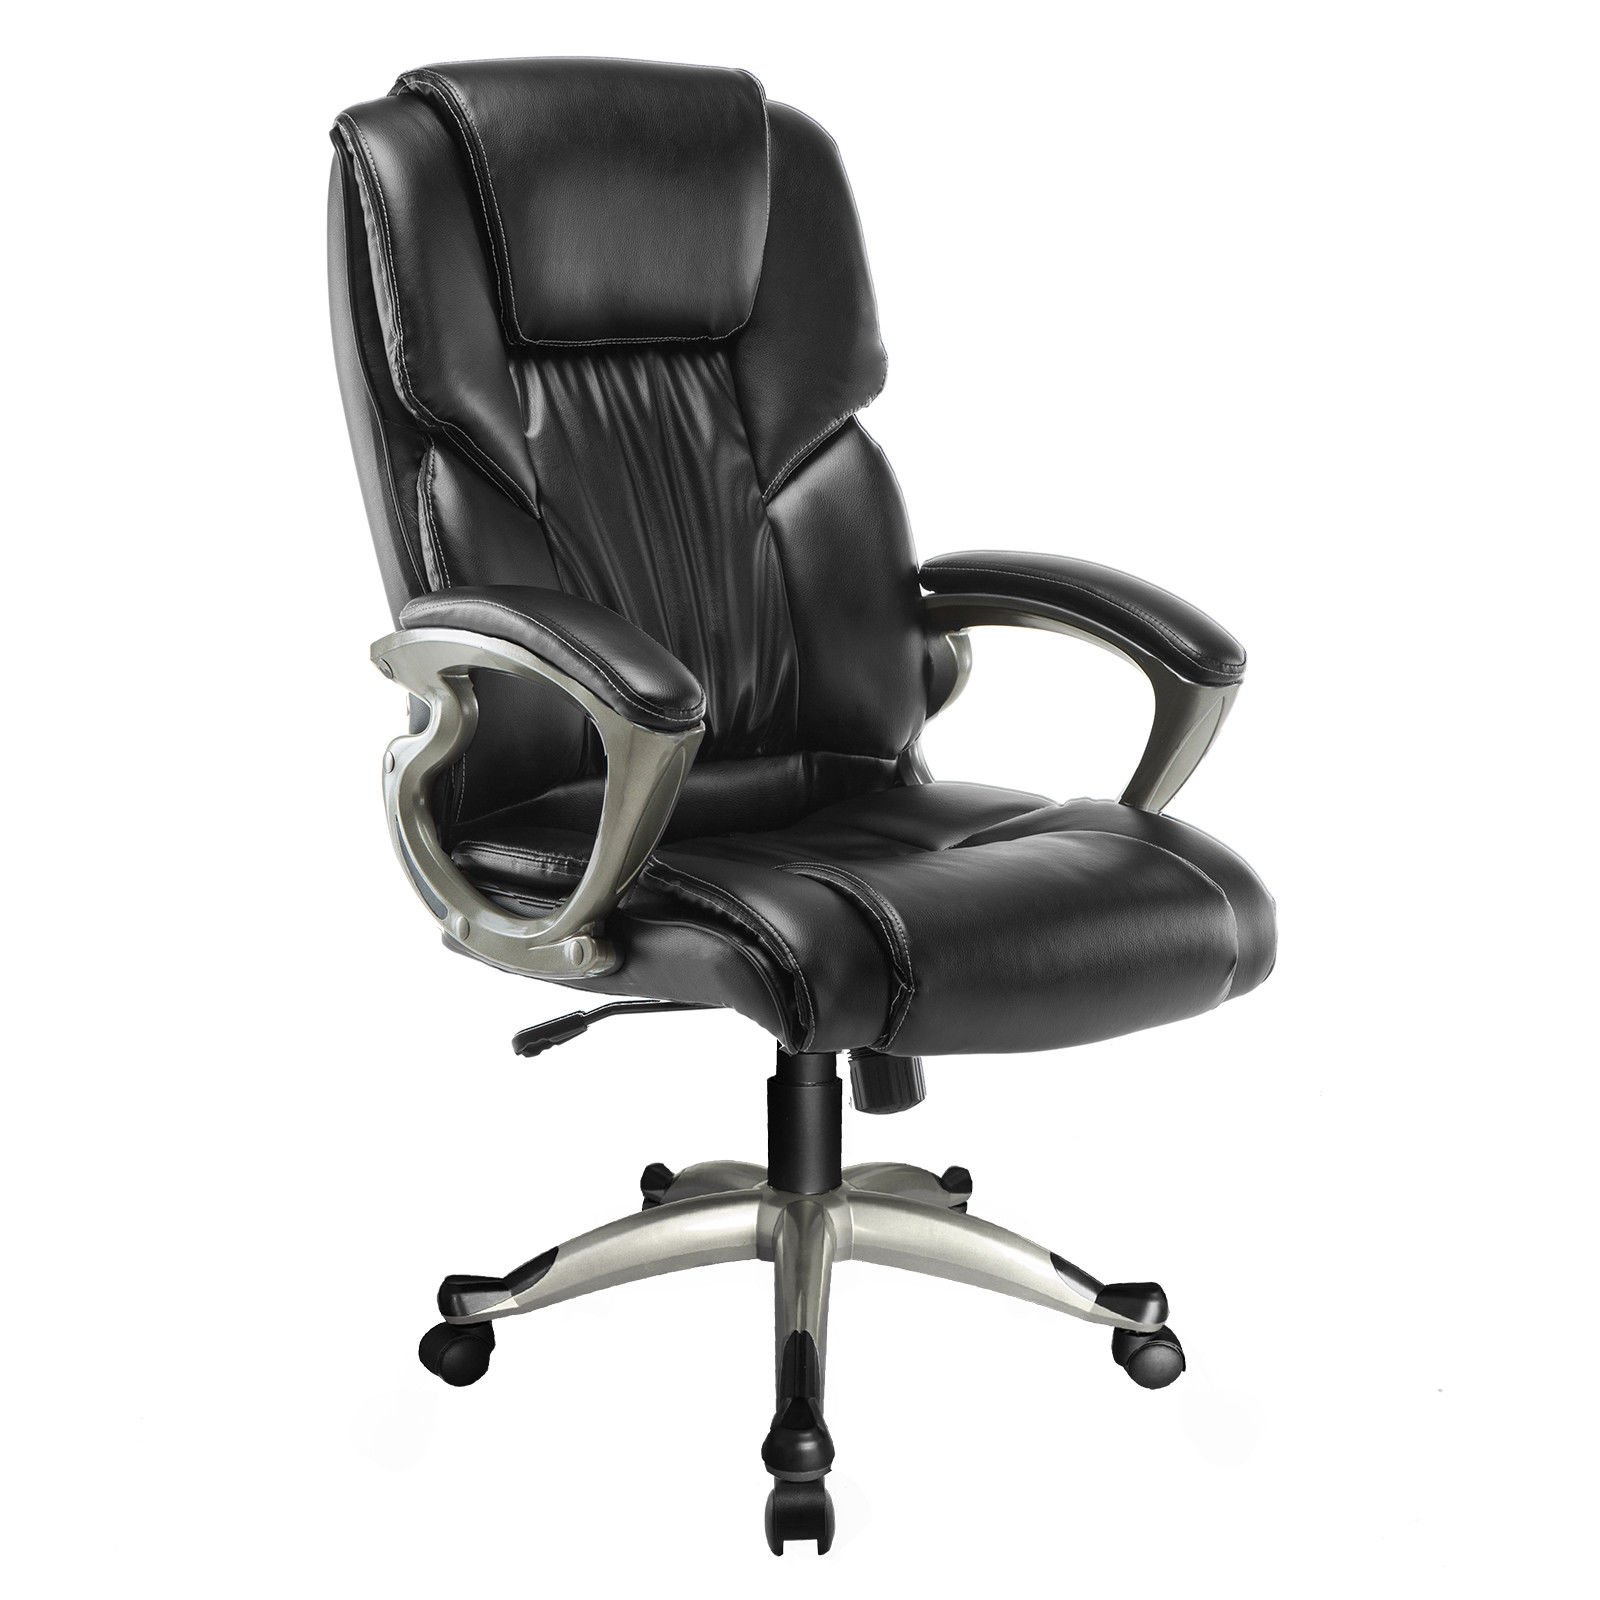 Mecor Ergonomic High Back Leather Office Chair Big and Tall Executive Swivel Chair with Arms Black Home